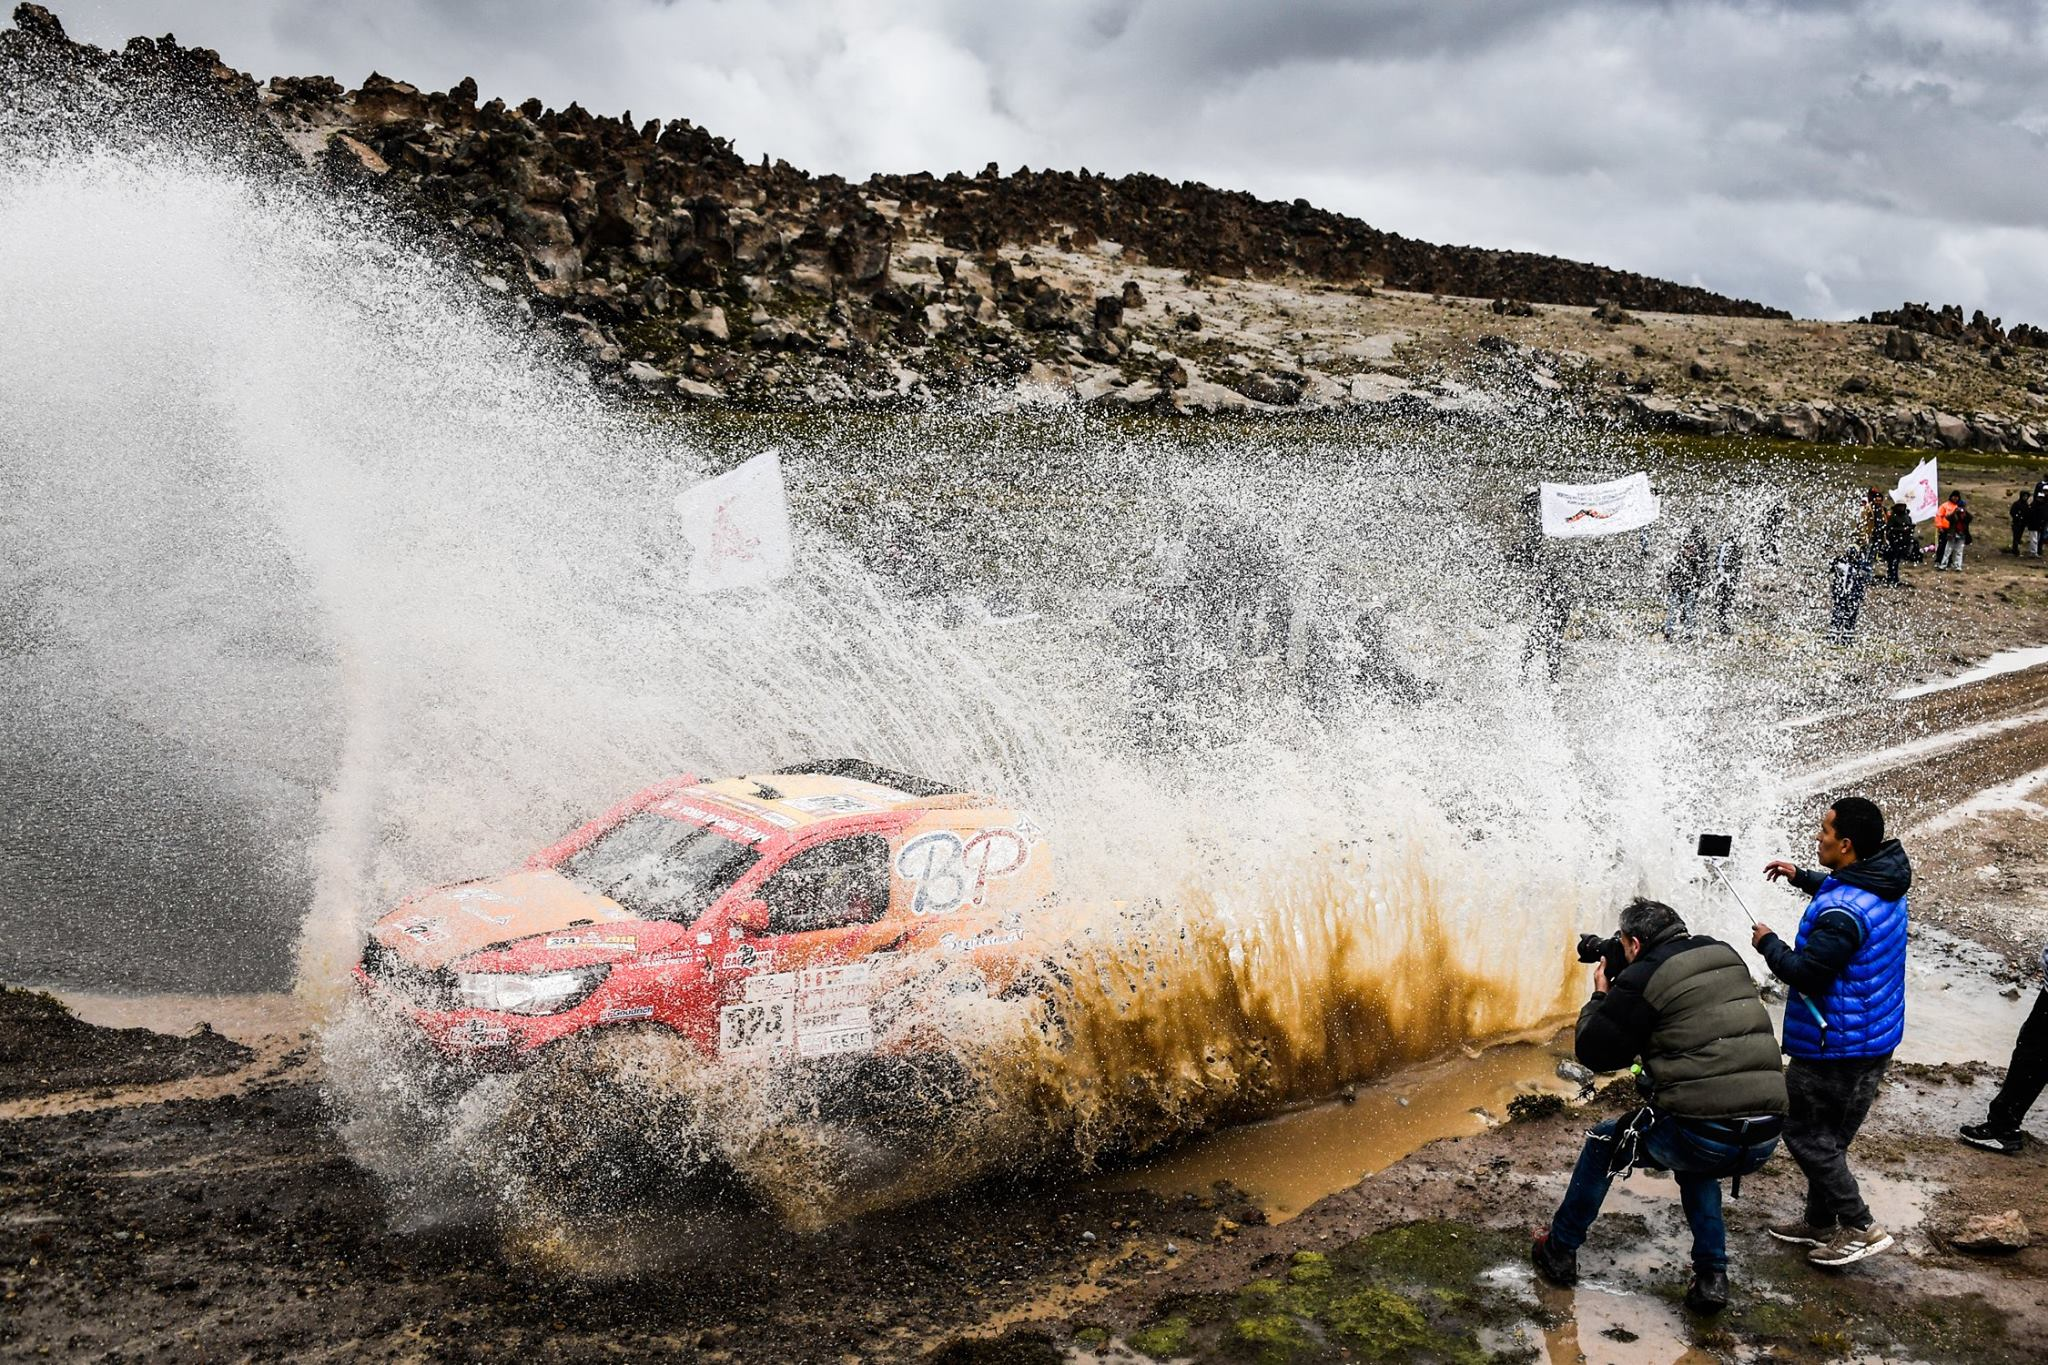 Rally Dakar 2018 Day 8 (6)